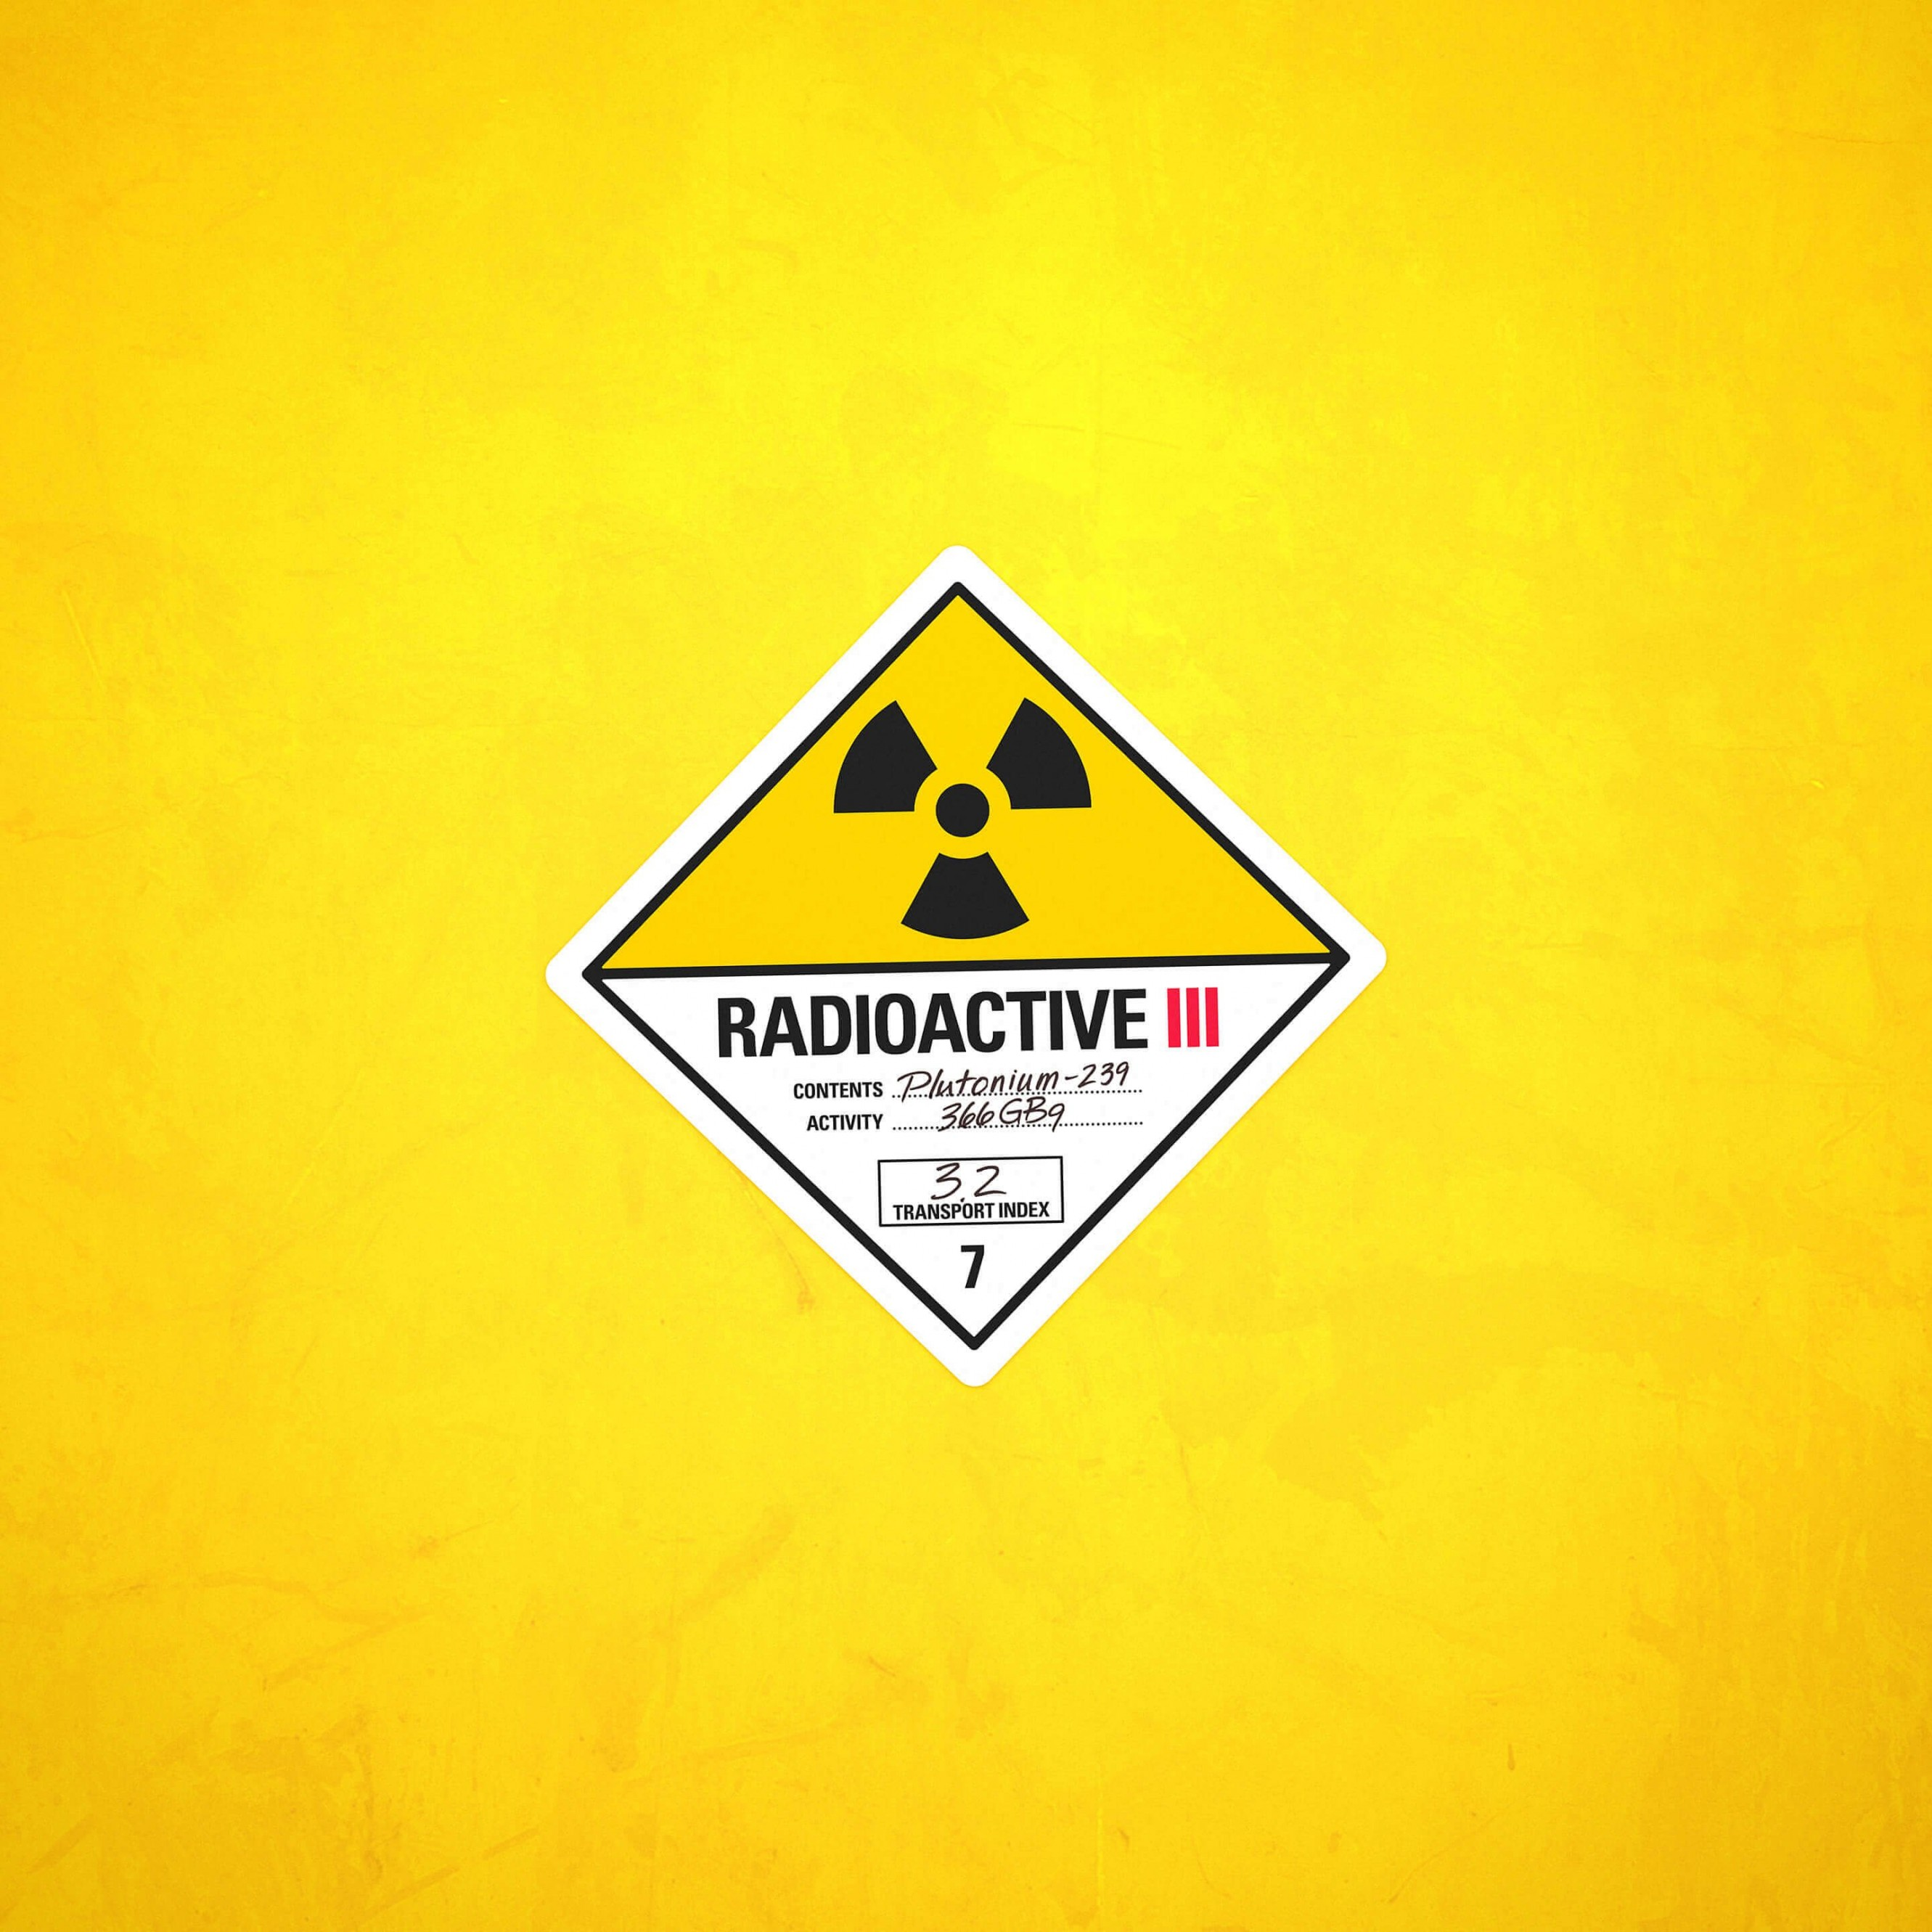 Radioactive Wallpaper for Apple iPhone 6 Plus